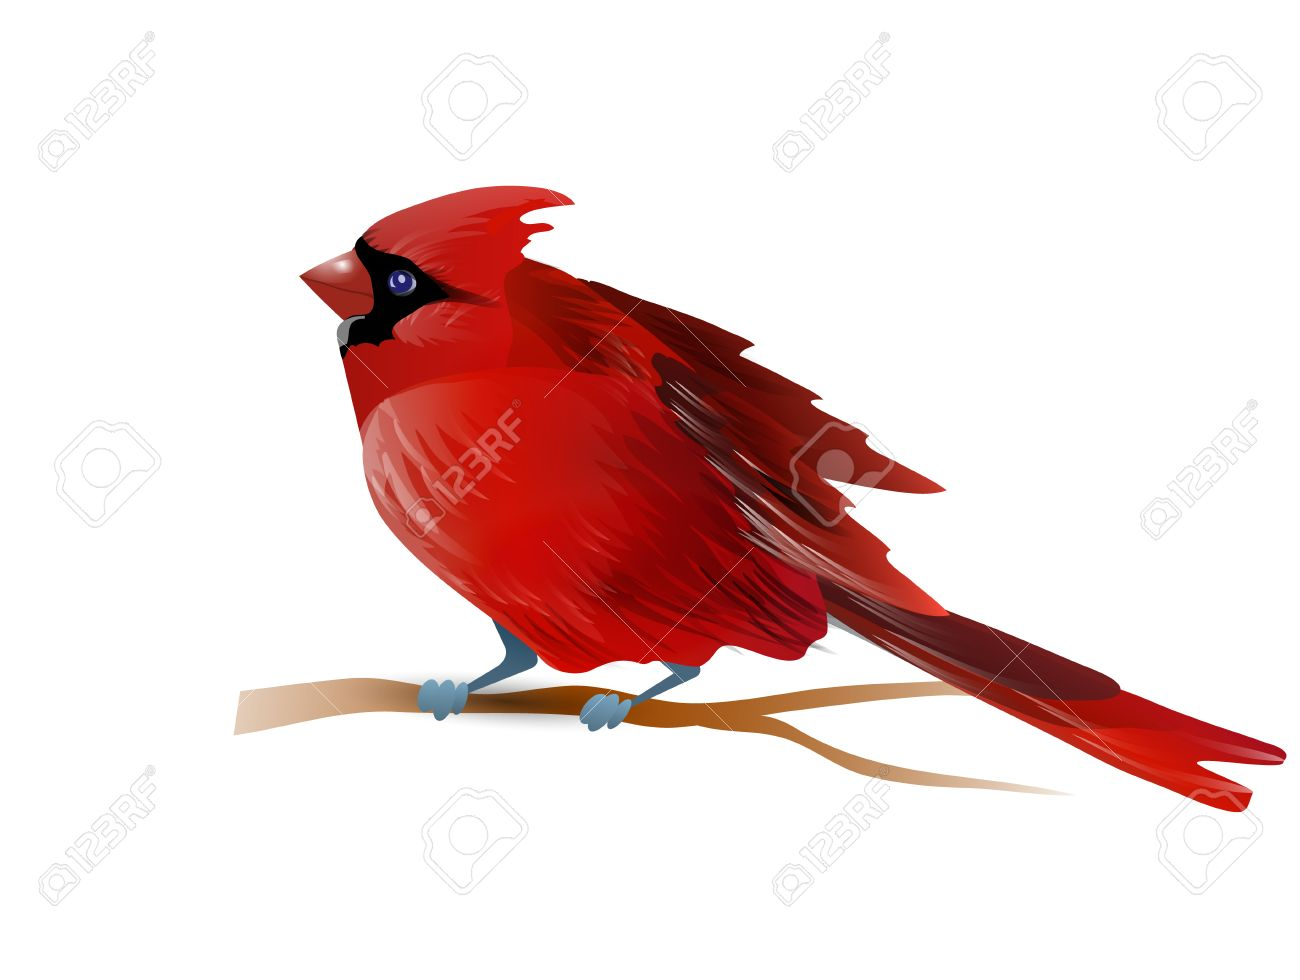 Vector Illustration D Oiseau Cardinal Rouge Isole Sur Blanc Banque D Images Et Photos Libres De Droits Image 67405764